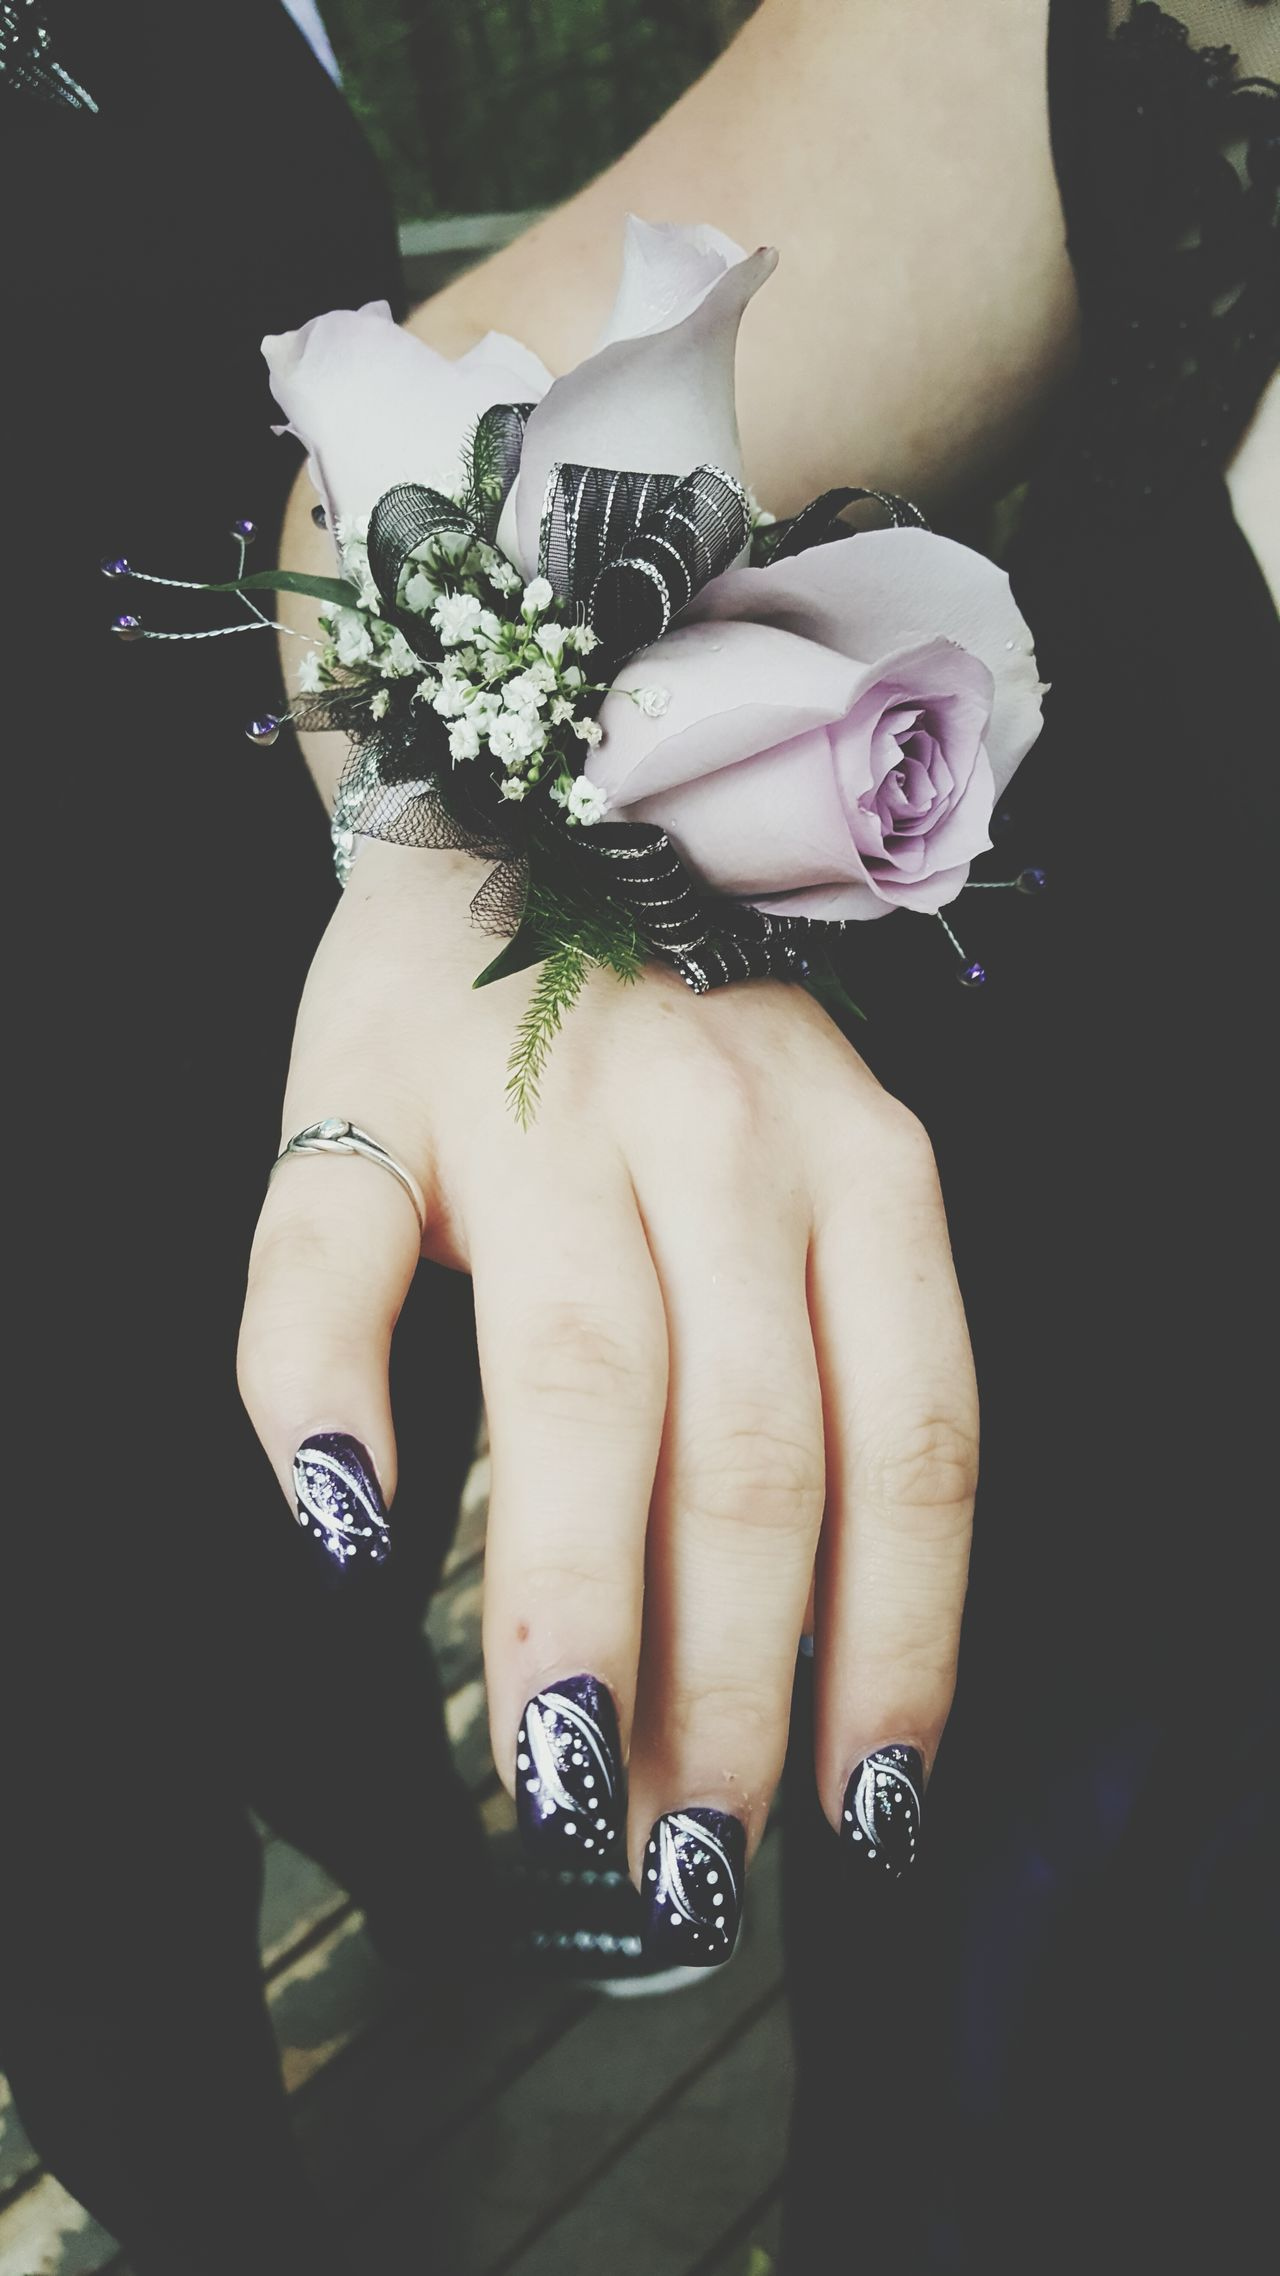 Flower Corsage Prom Nails Nail Art